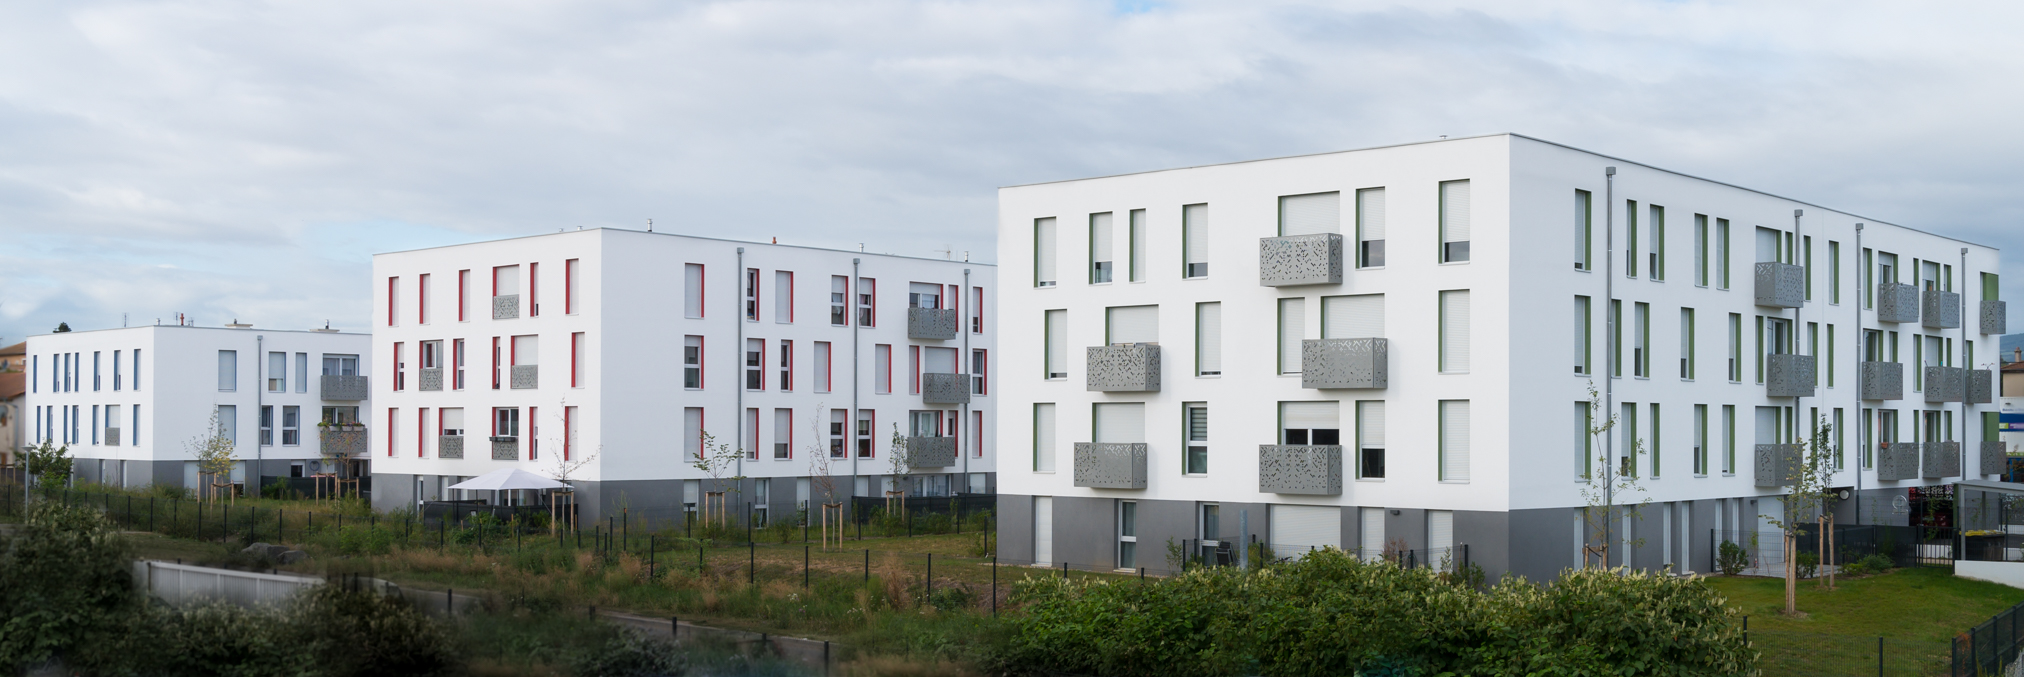 Construction de logements collectifs Les Chênes - Florence Gardenal Architect